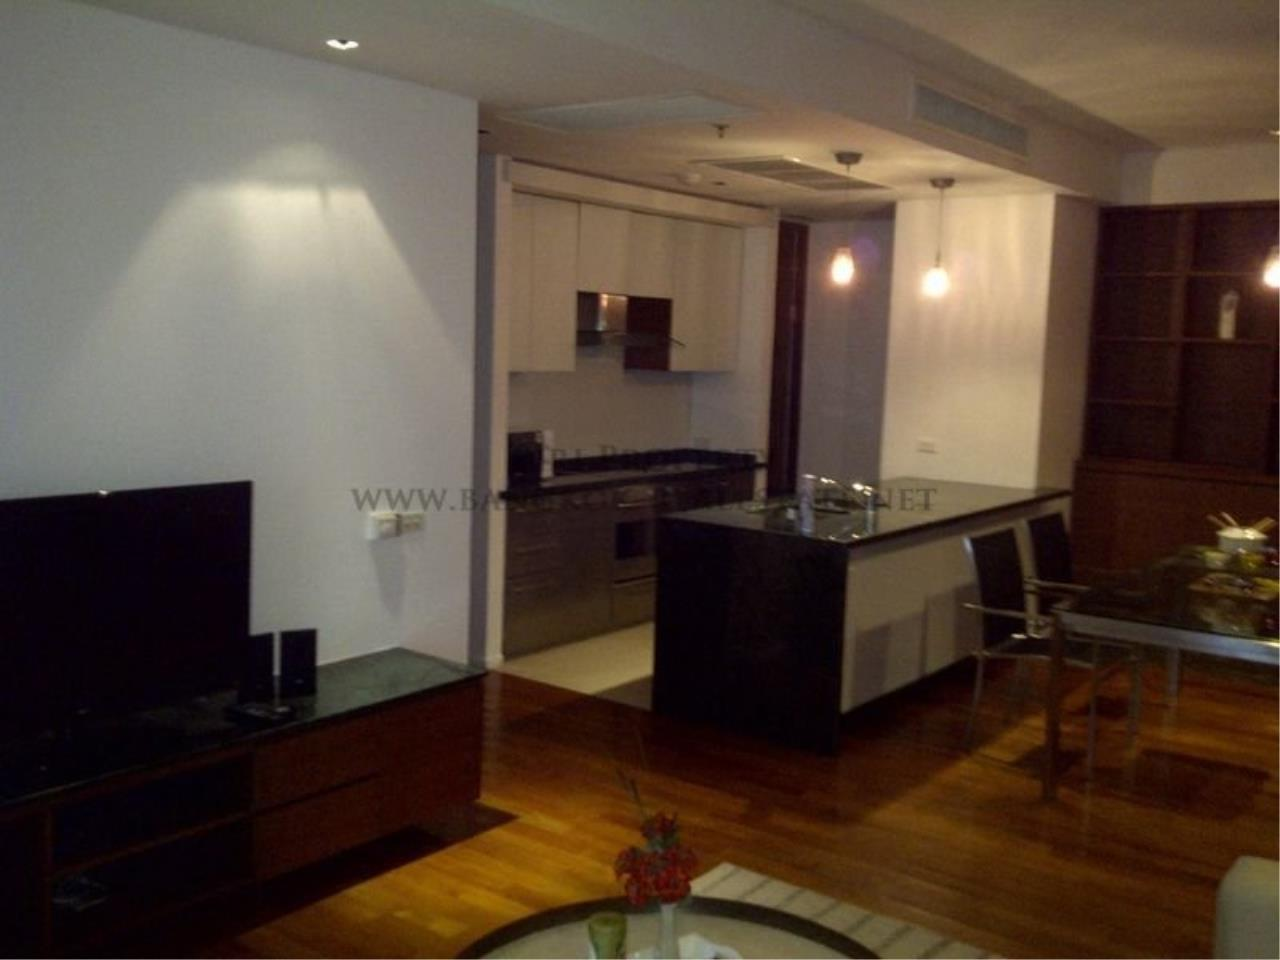 Piri Property Agency's 2 Bedroom Condo in The Lakes building for Rent - High Floor 6